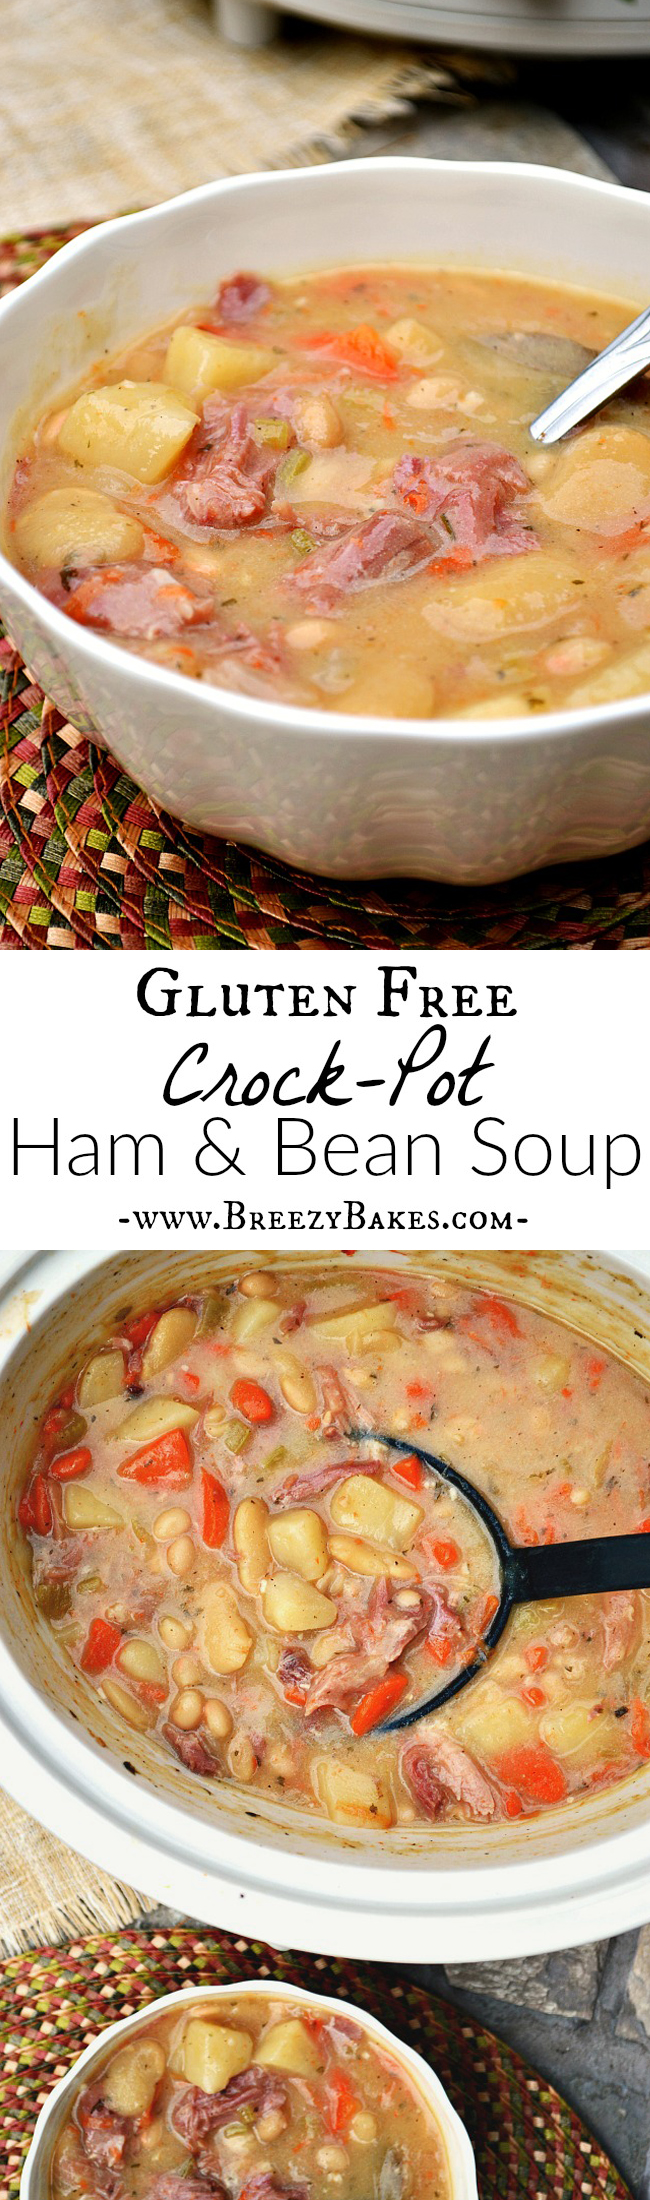 Don't throw out that coveted ham bone! There is way too much deliciousness to be made as in this Gluten Free Crock-Pot Ham and Bean Soup. Canned beans and a handful of fresh veggies bring this soup together in no time!